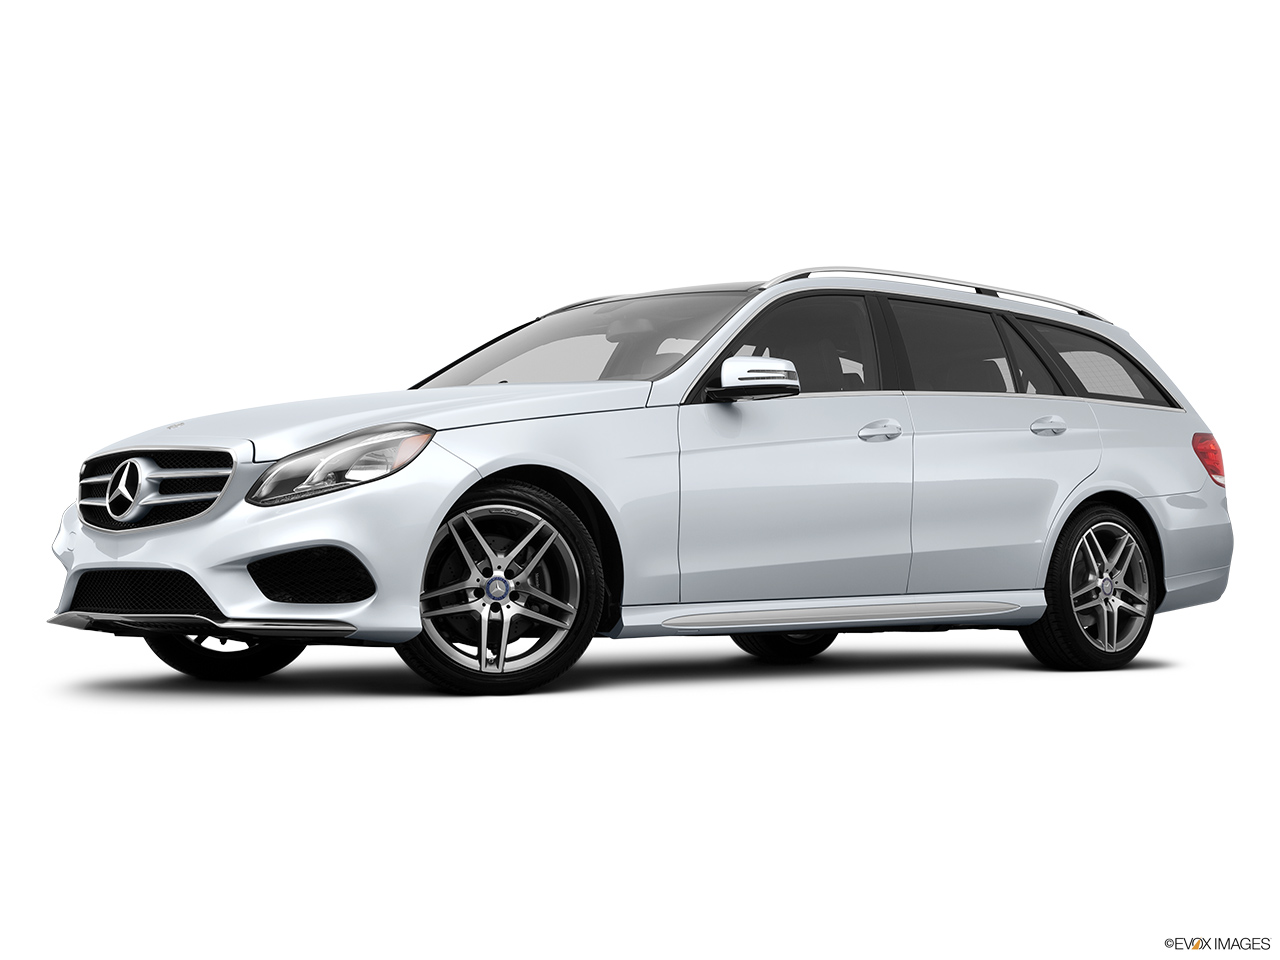 2014 mercedes benz e class wagon e350 luxury 4matic for Mercedes benz e350 luxury sedan 2014